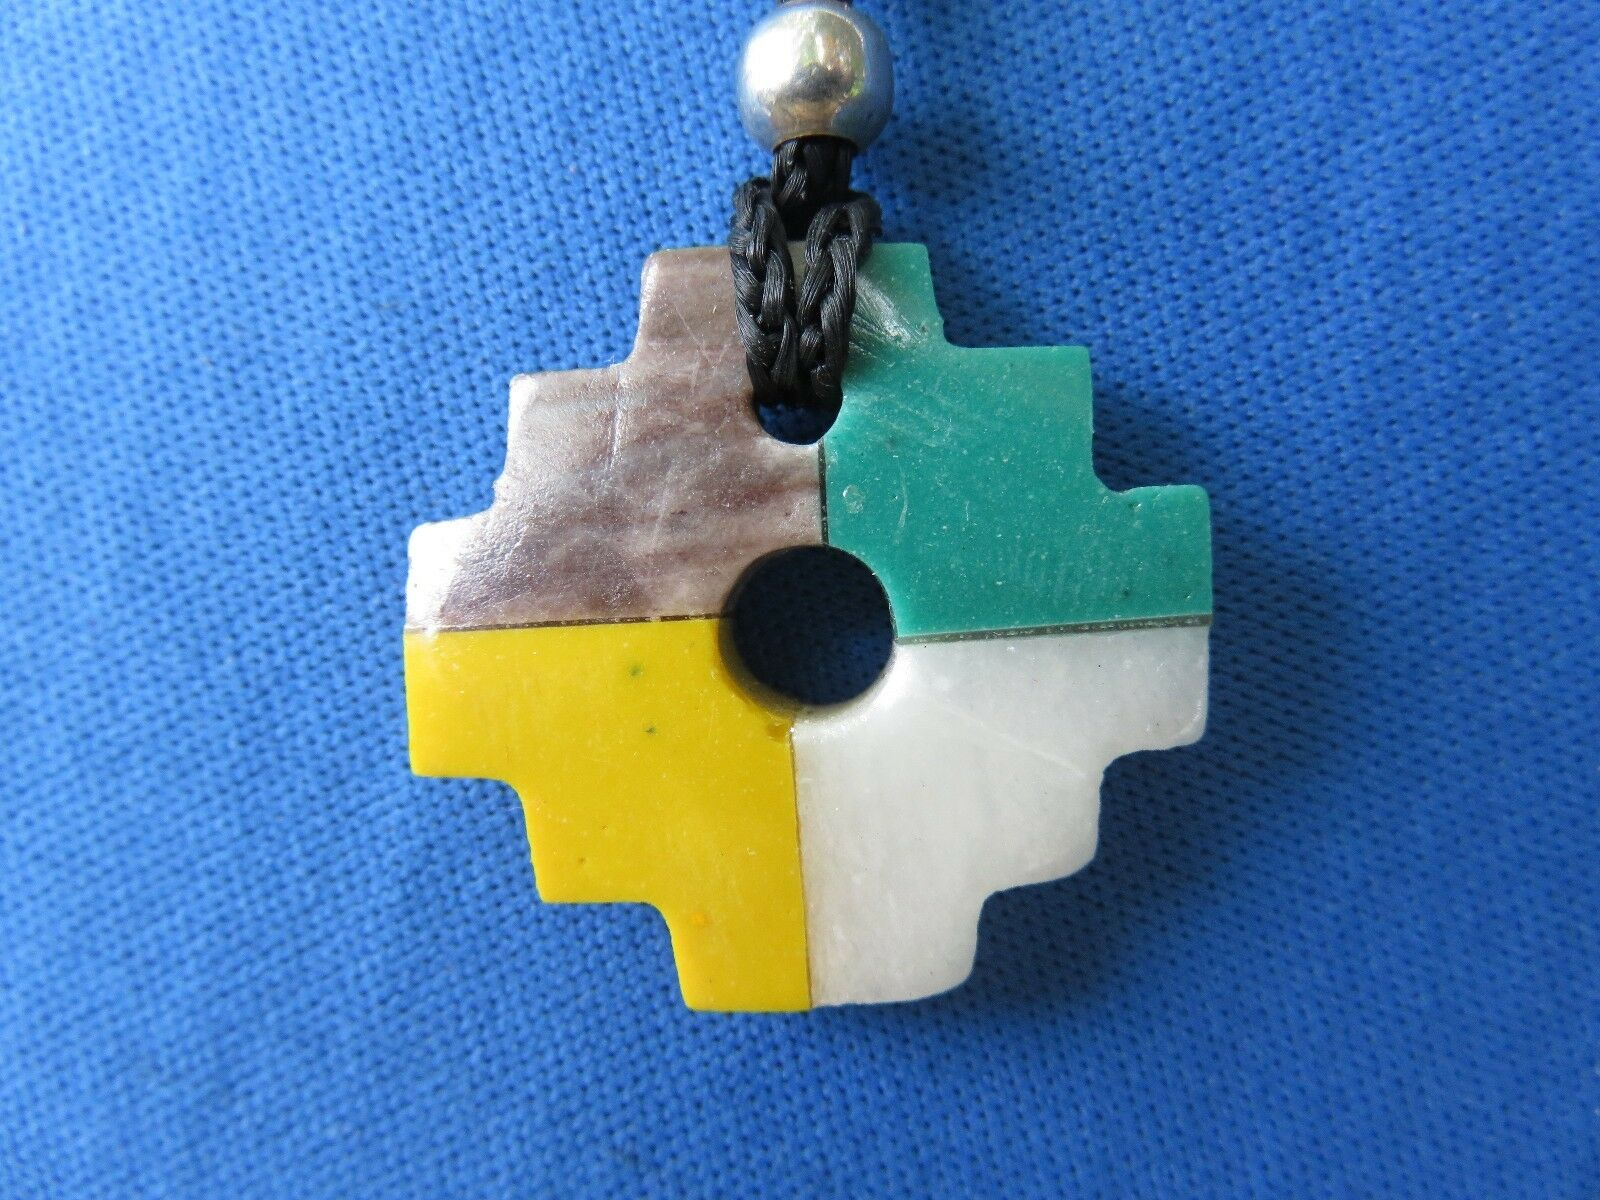 Peru pendant necklace south american inca cross ethnic jewelry peru pendant necklace south american inca cross ethnic jewelry chakana c 1 of 3only 1 available aloadofball Images